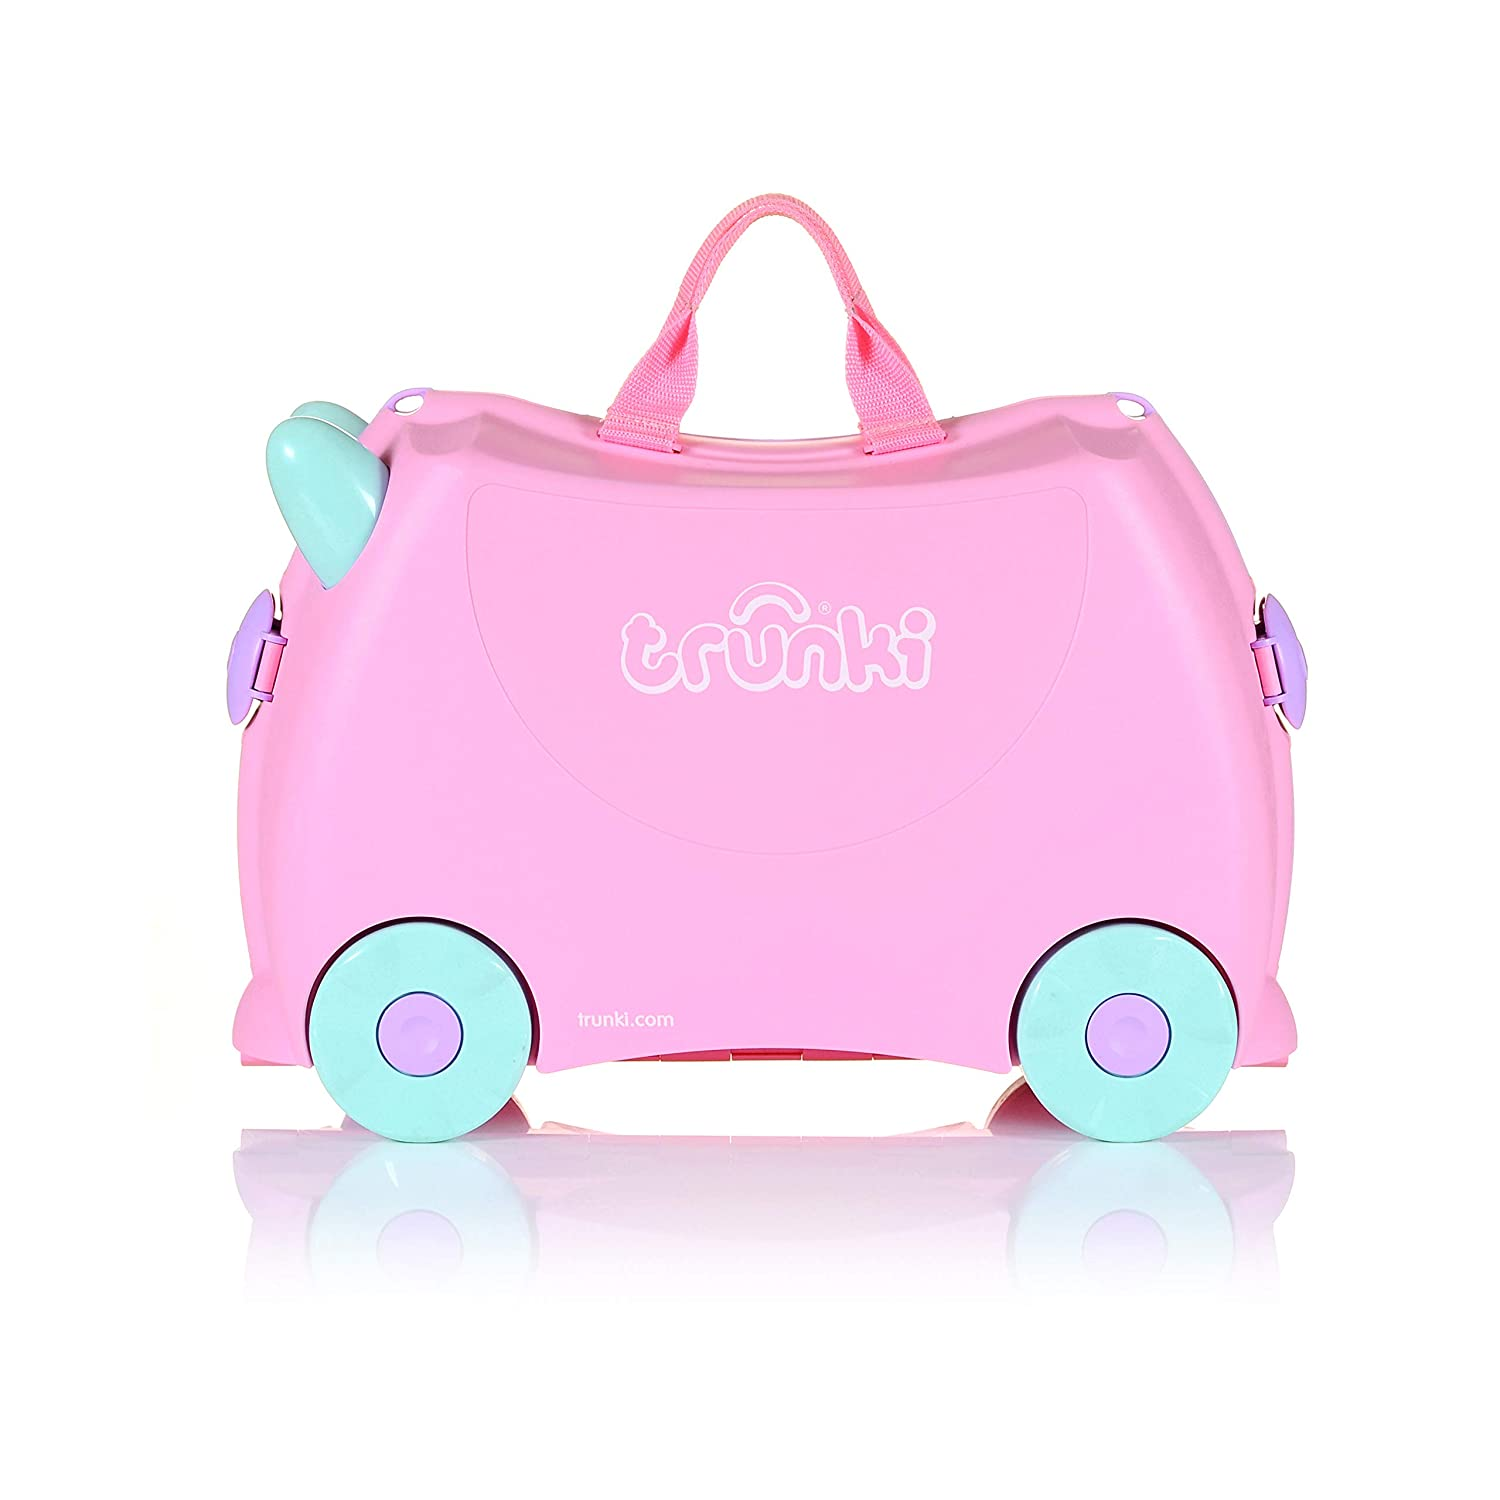 Trunki 10110 - Equipaje infantil, 18 liters, color rosa: Amazon.es: Equipaje